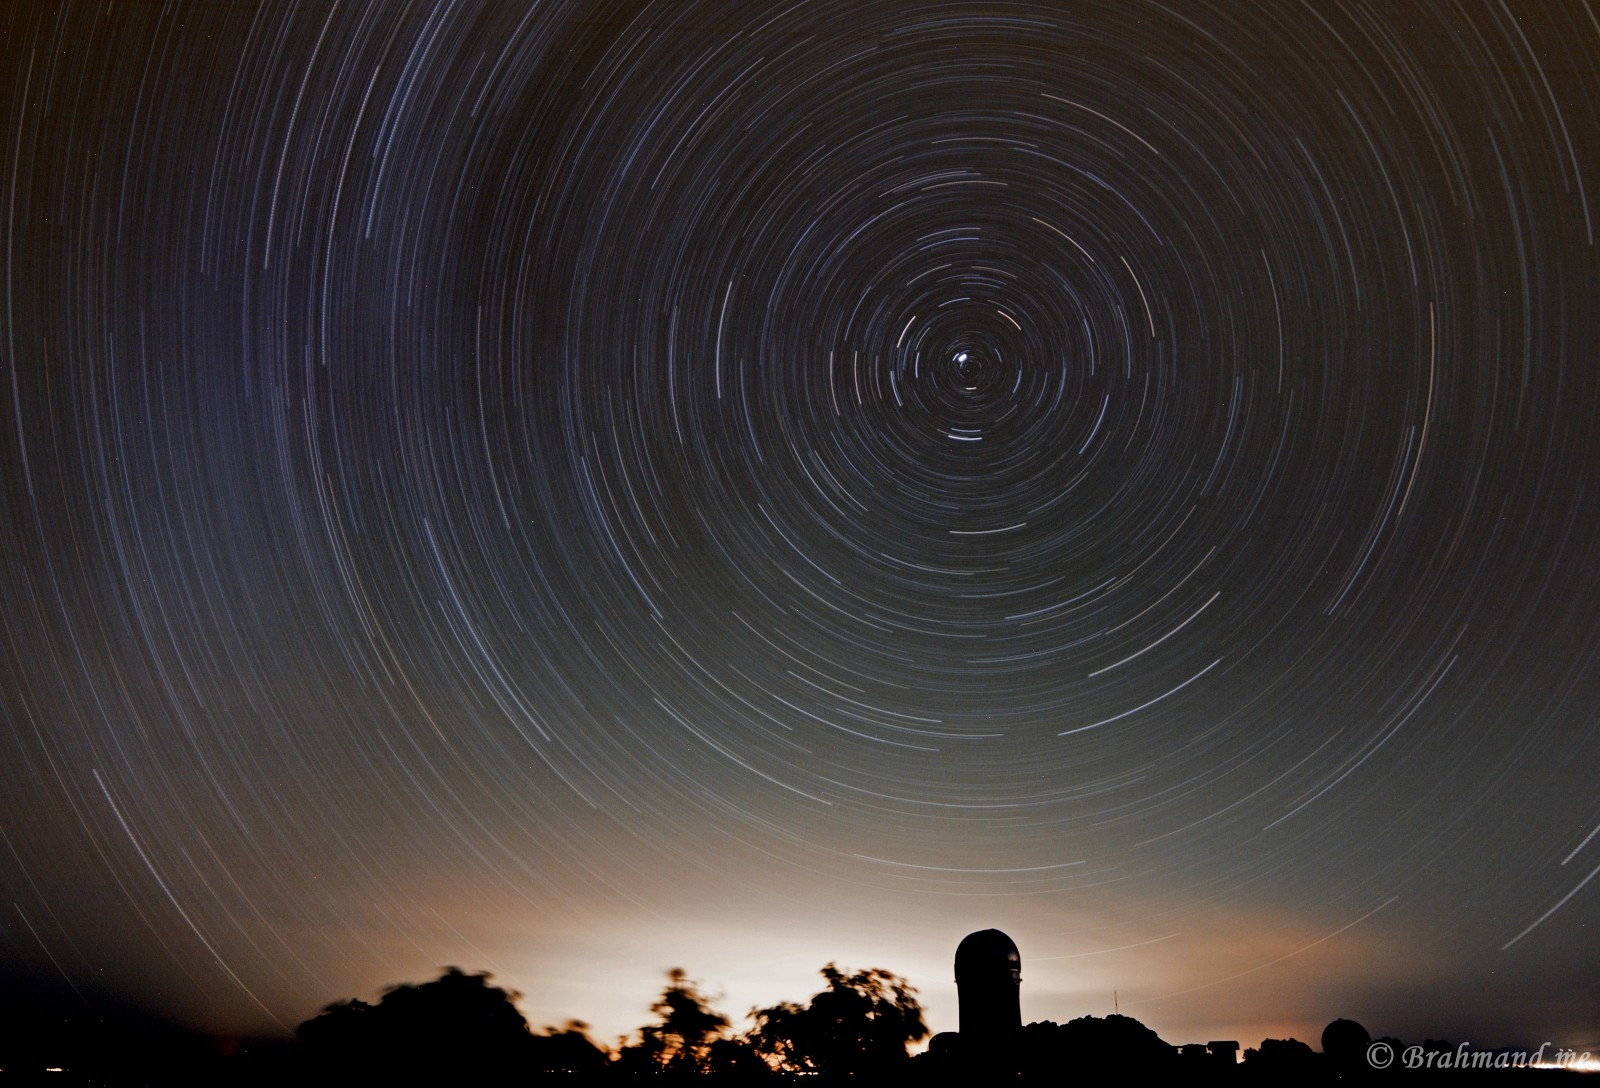 kittpeakstartrails